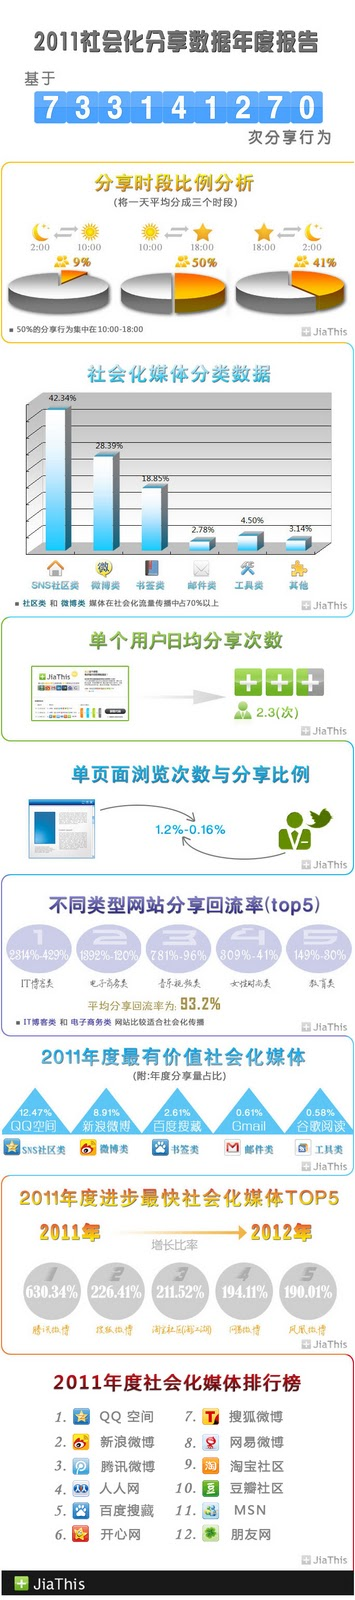 Social Media and Mobile in China: January 2012